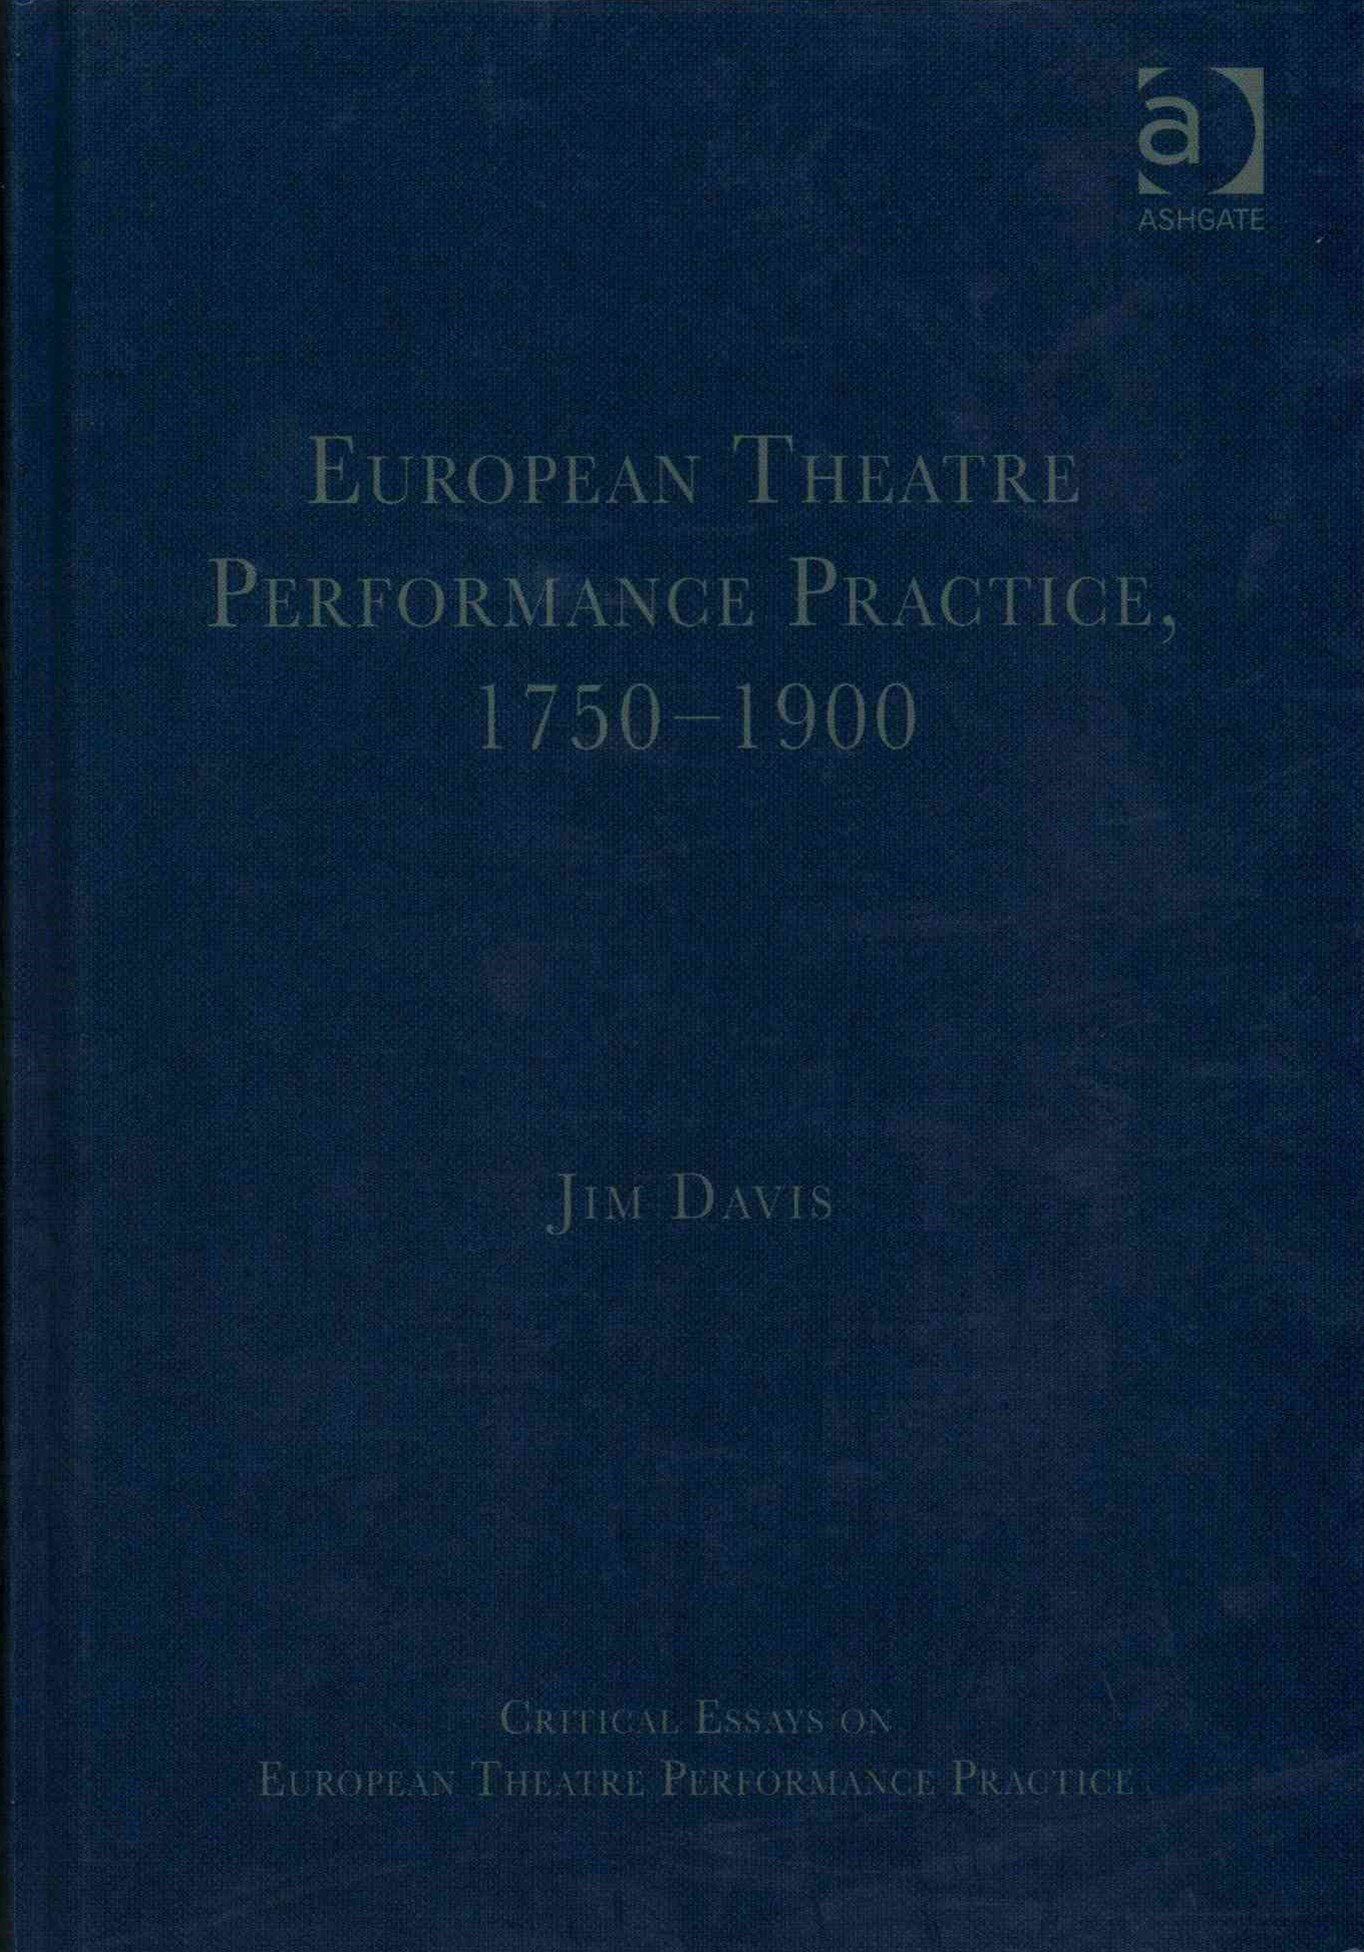 European Theatre Performance Practice, 1750-1900